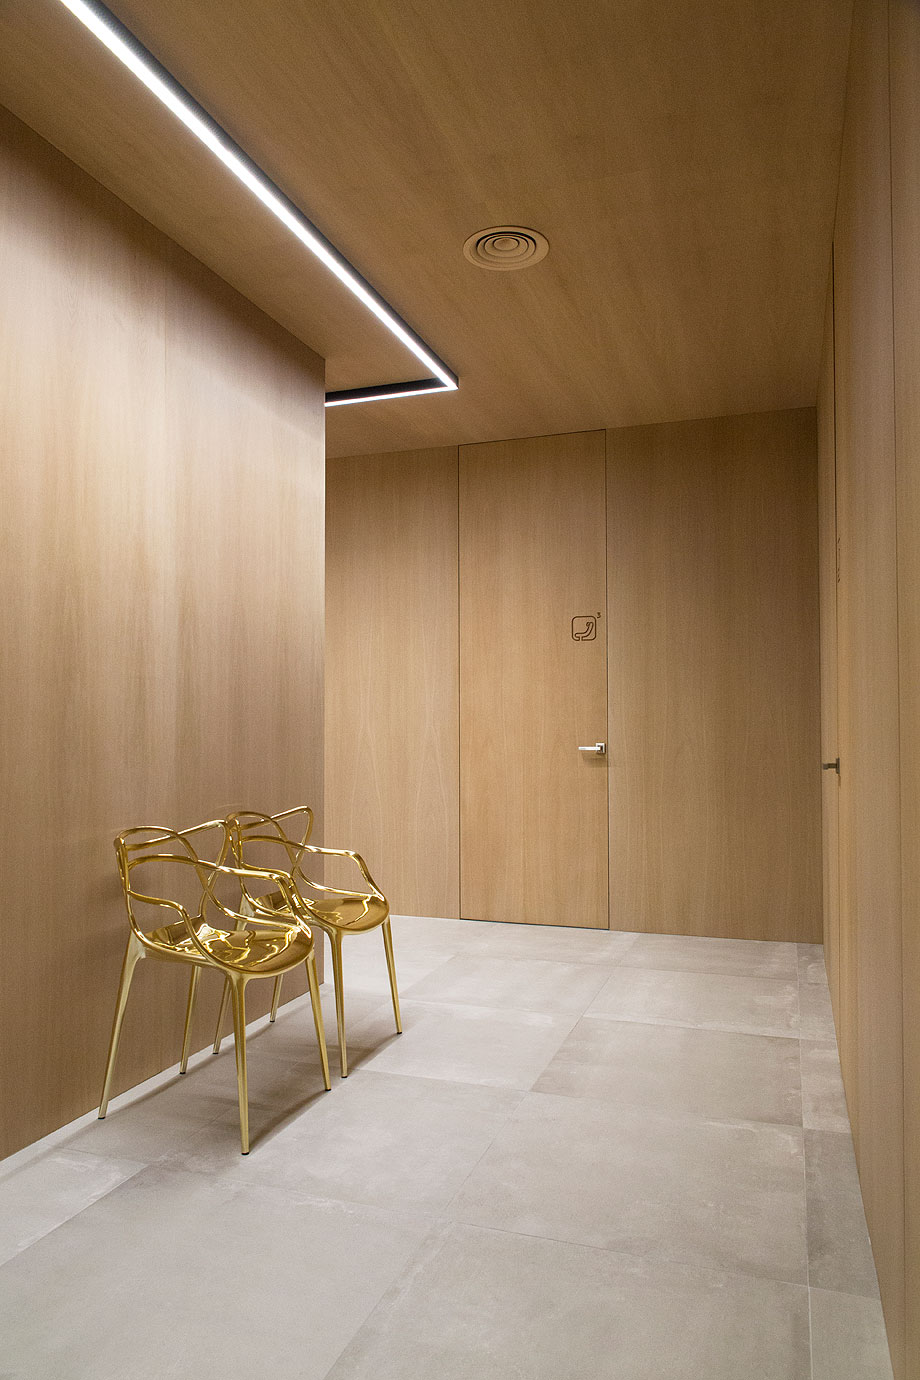 clinica-dental-jorda-ebano-arquitectura-interior (5)